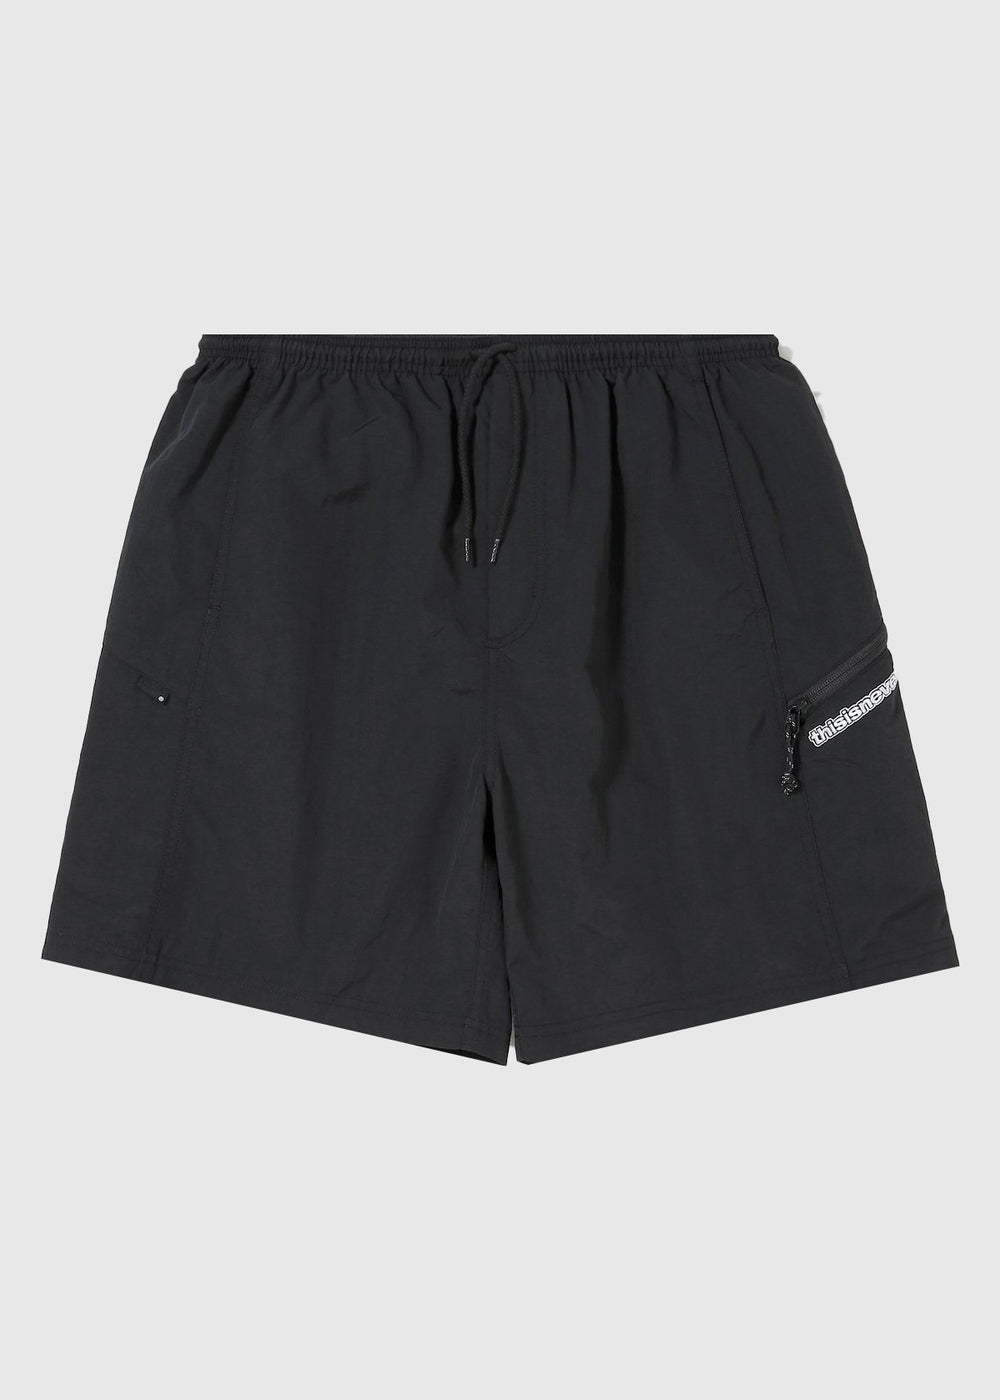 zip-jogging-short-tn20sso005-blk-blk-1